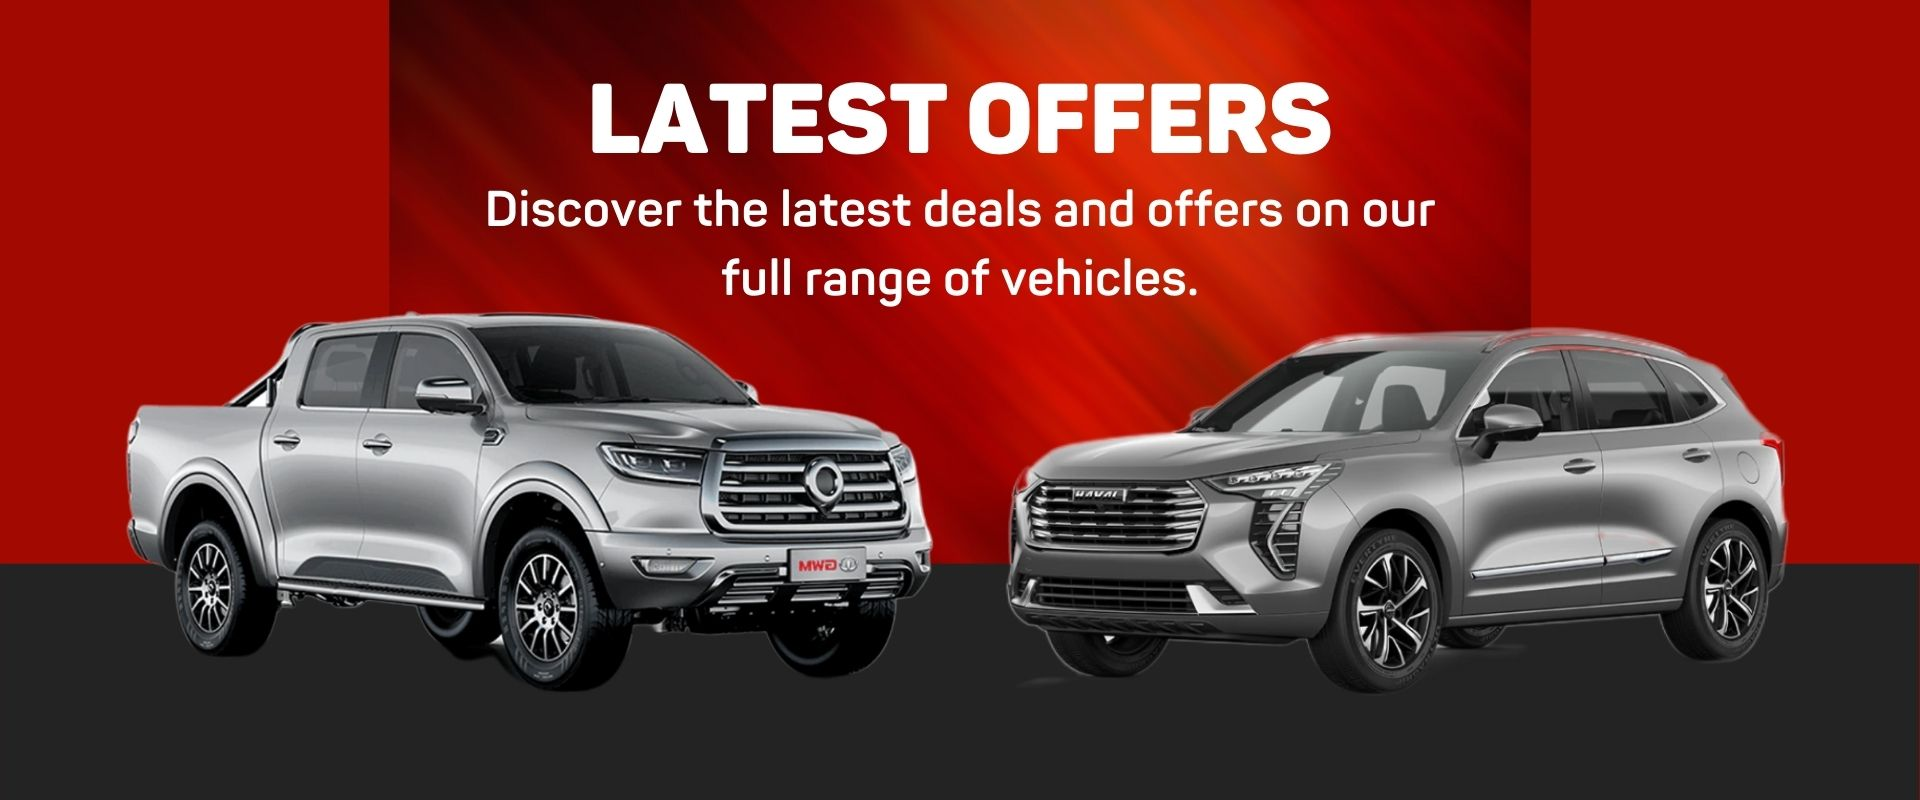 See Our Latest GWM Haval Offers